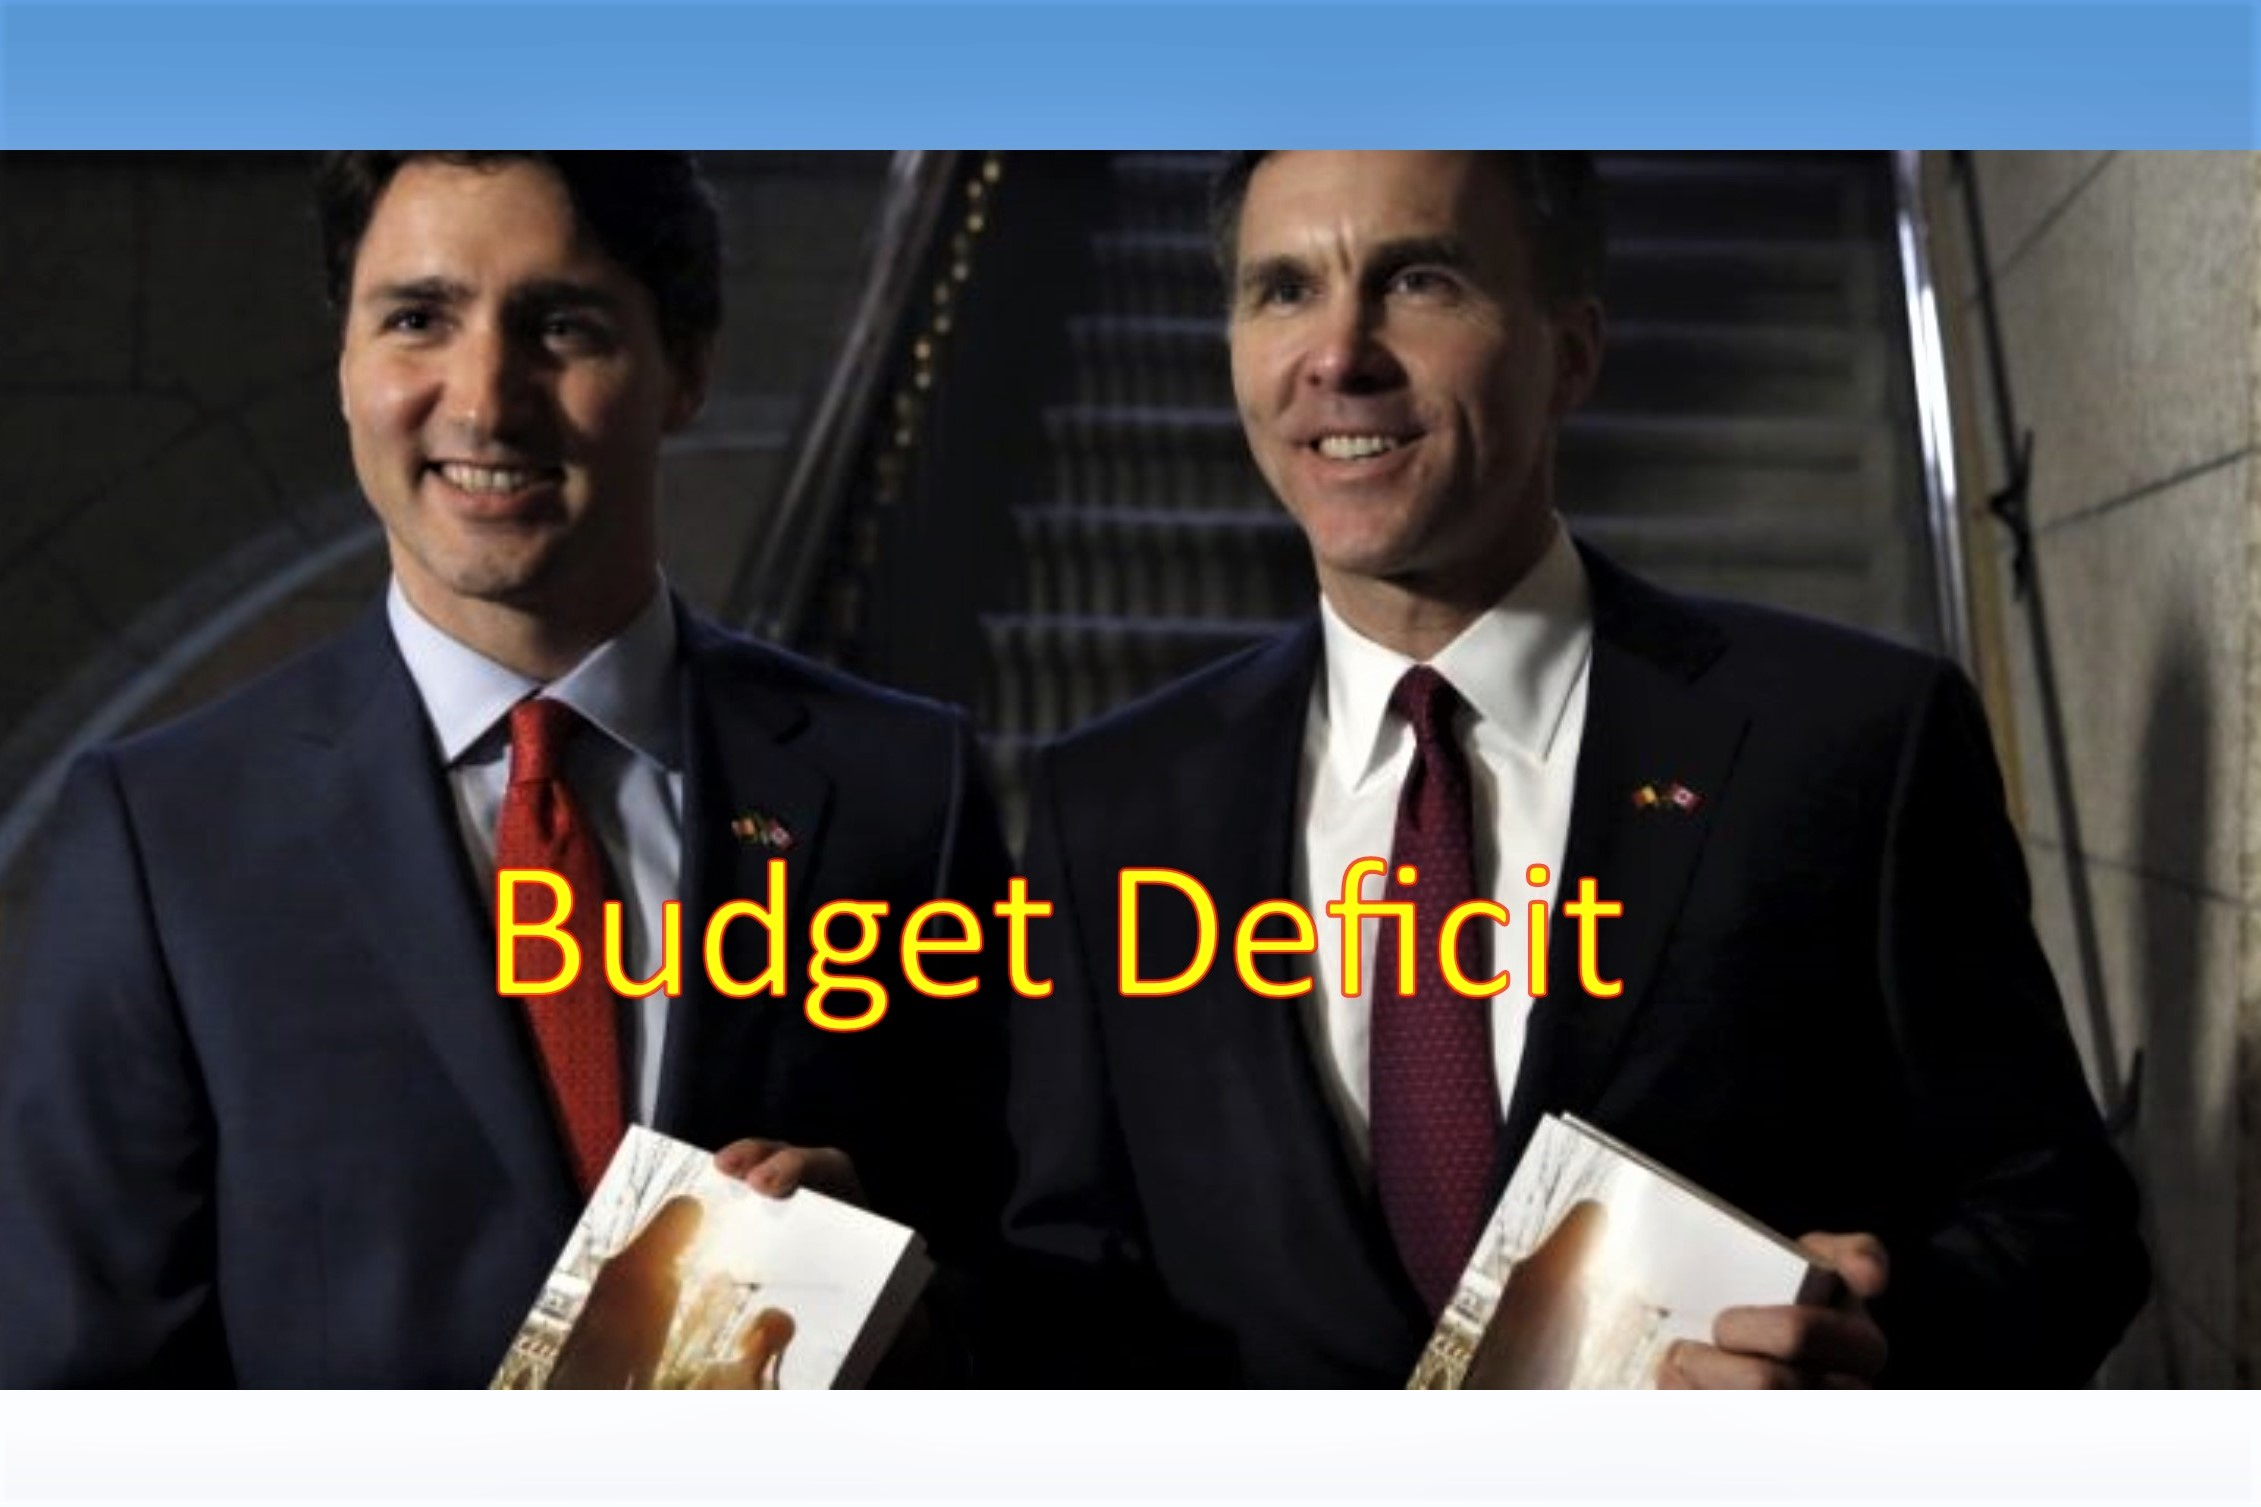 Parliamentary Budget Office projects larger deficits amid slower economic growth